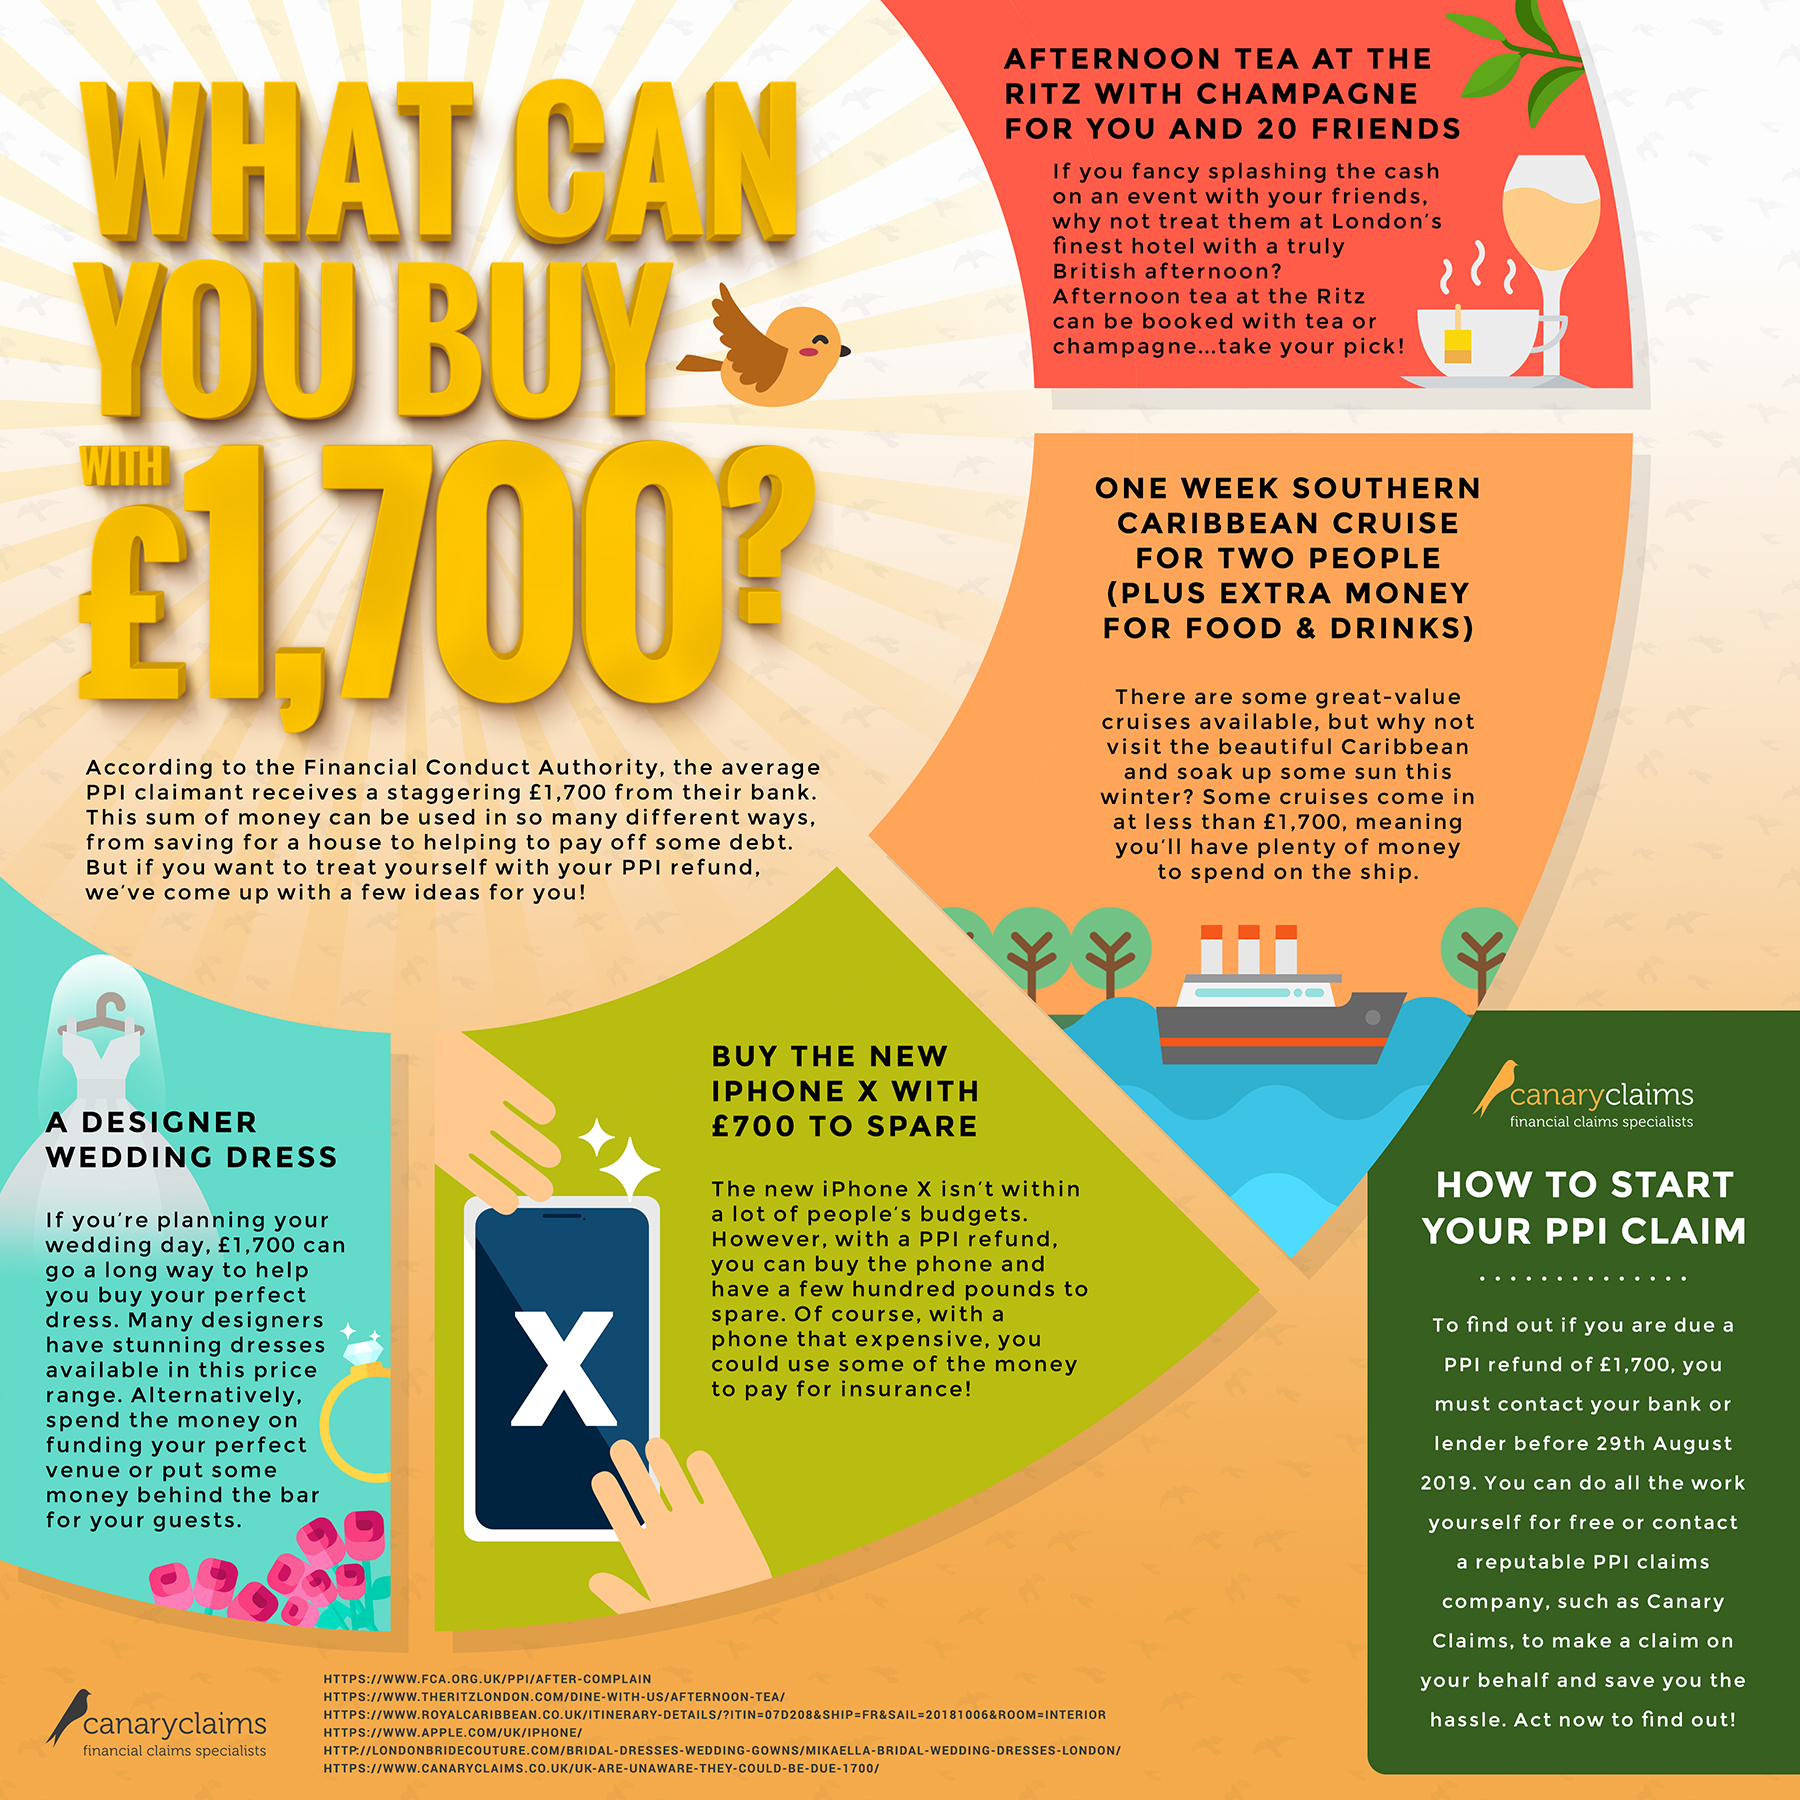 Infographic of what you can buy with the average PPI payout of £1700